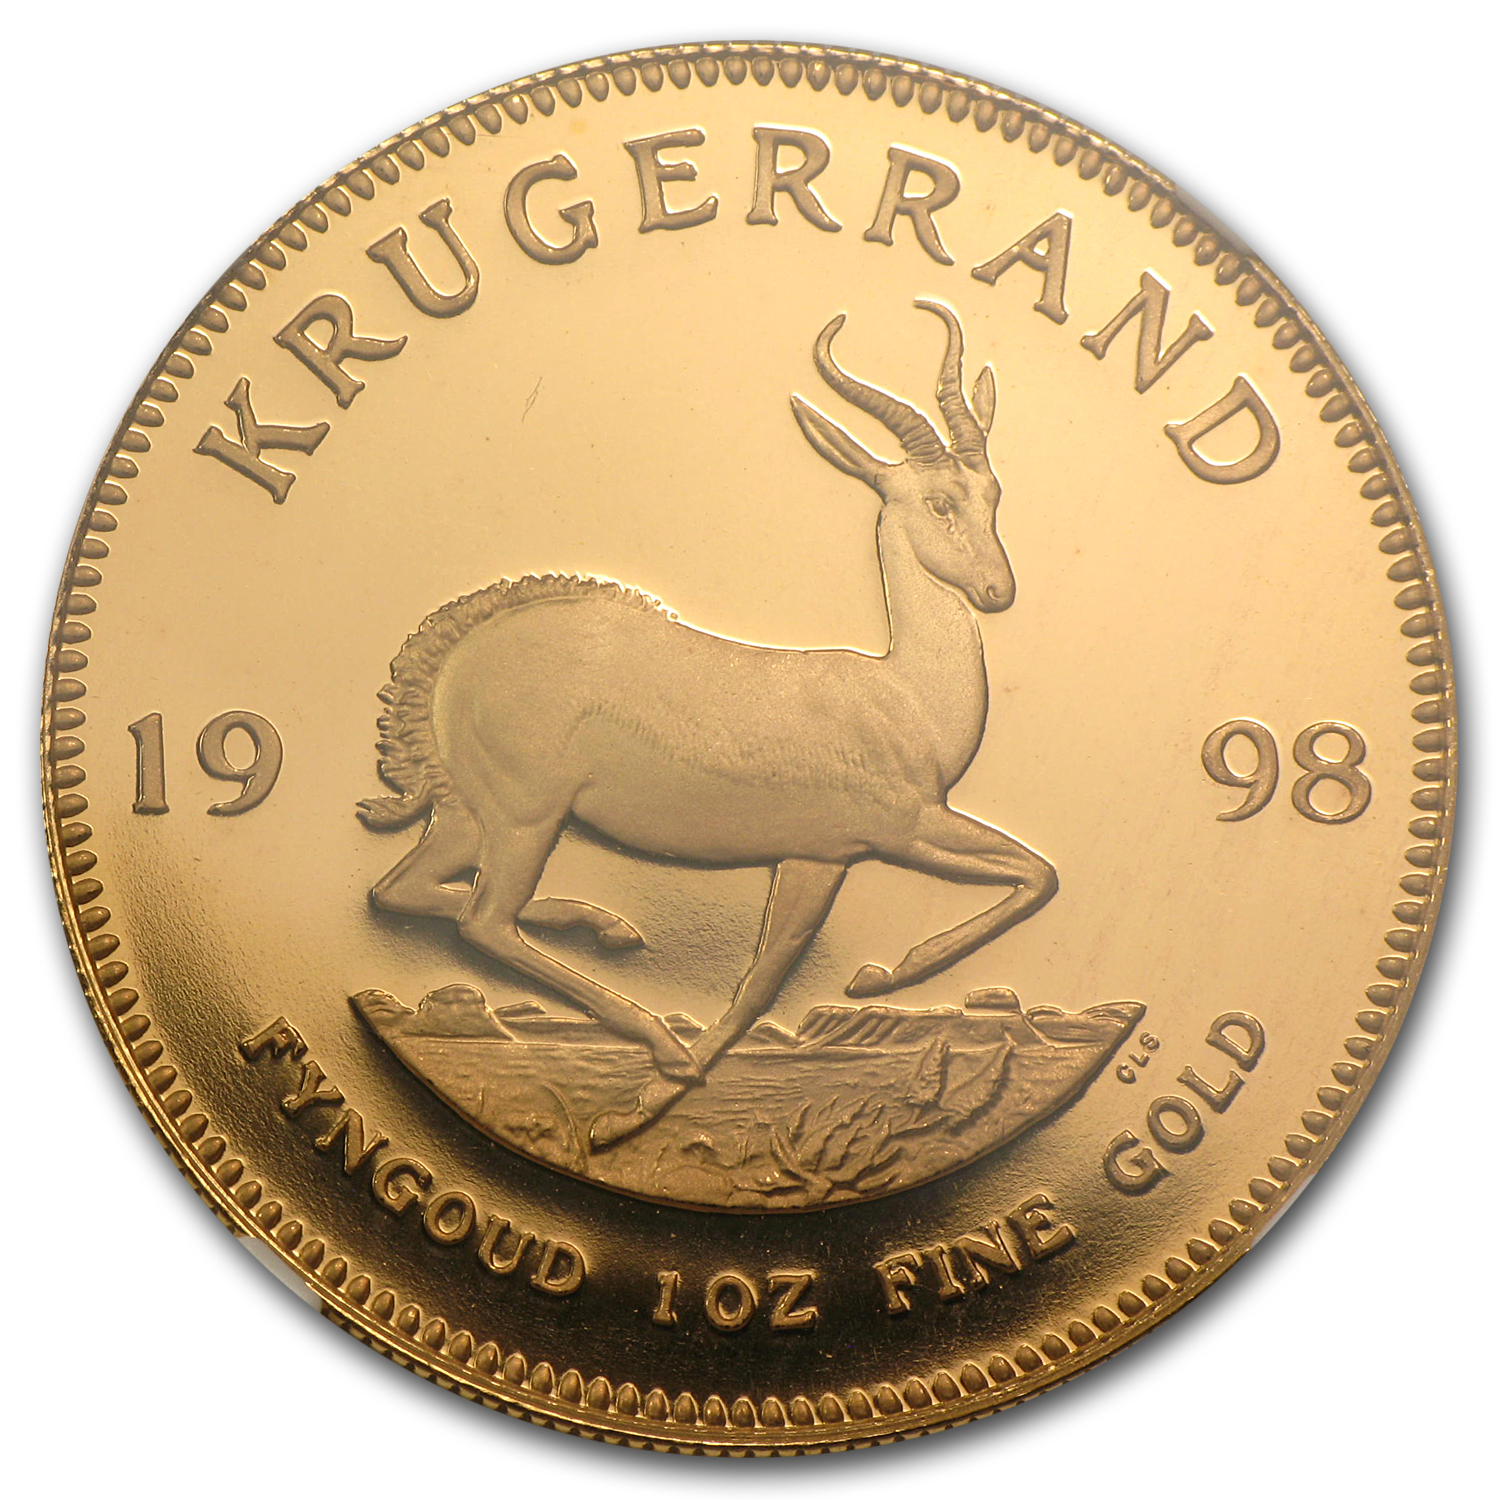 1998 1 oz Gold South African Krugerrand PF-69 NGC